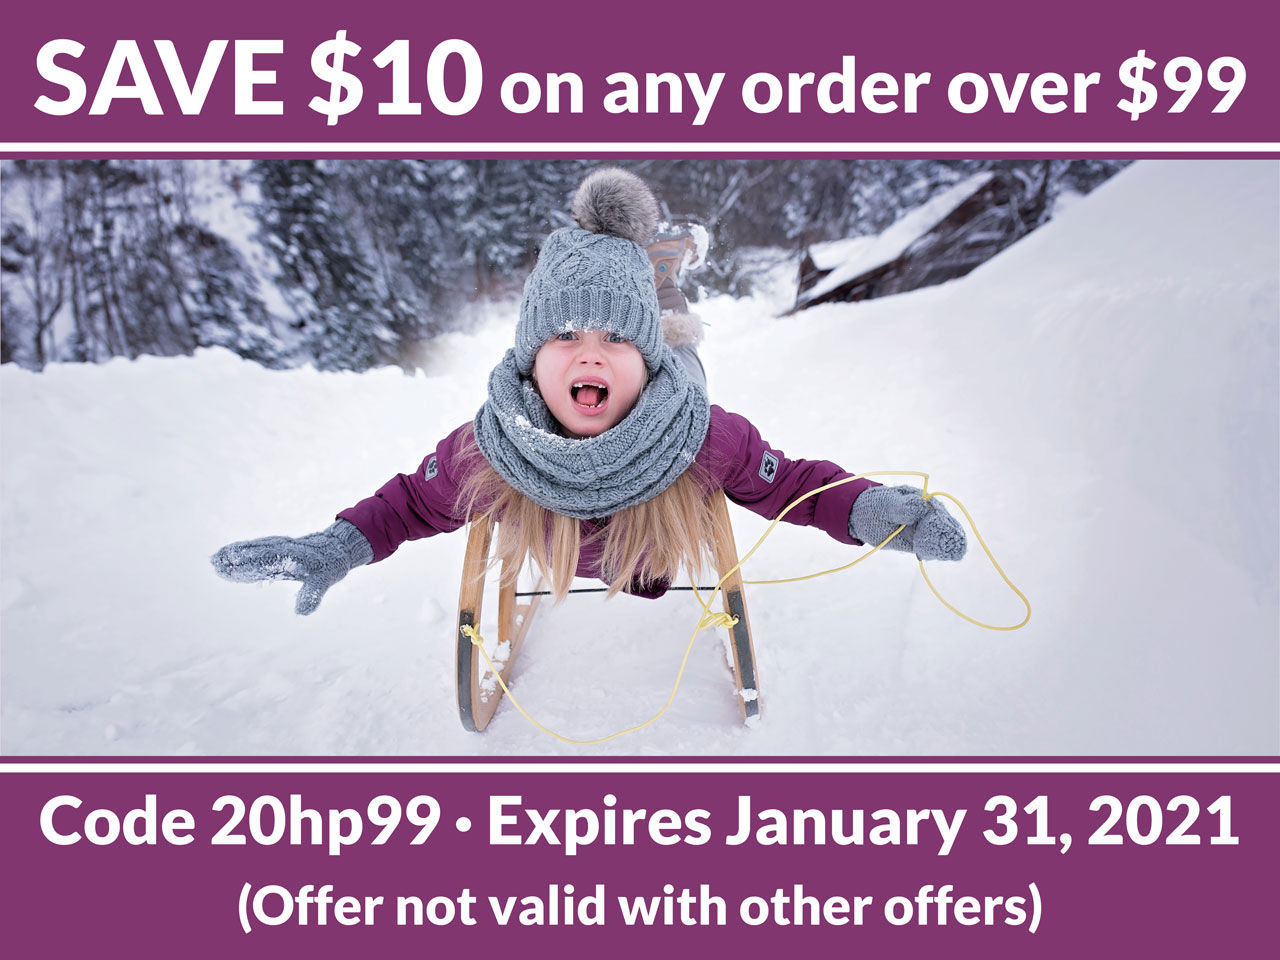 SAve $10 on any order over $99